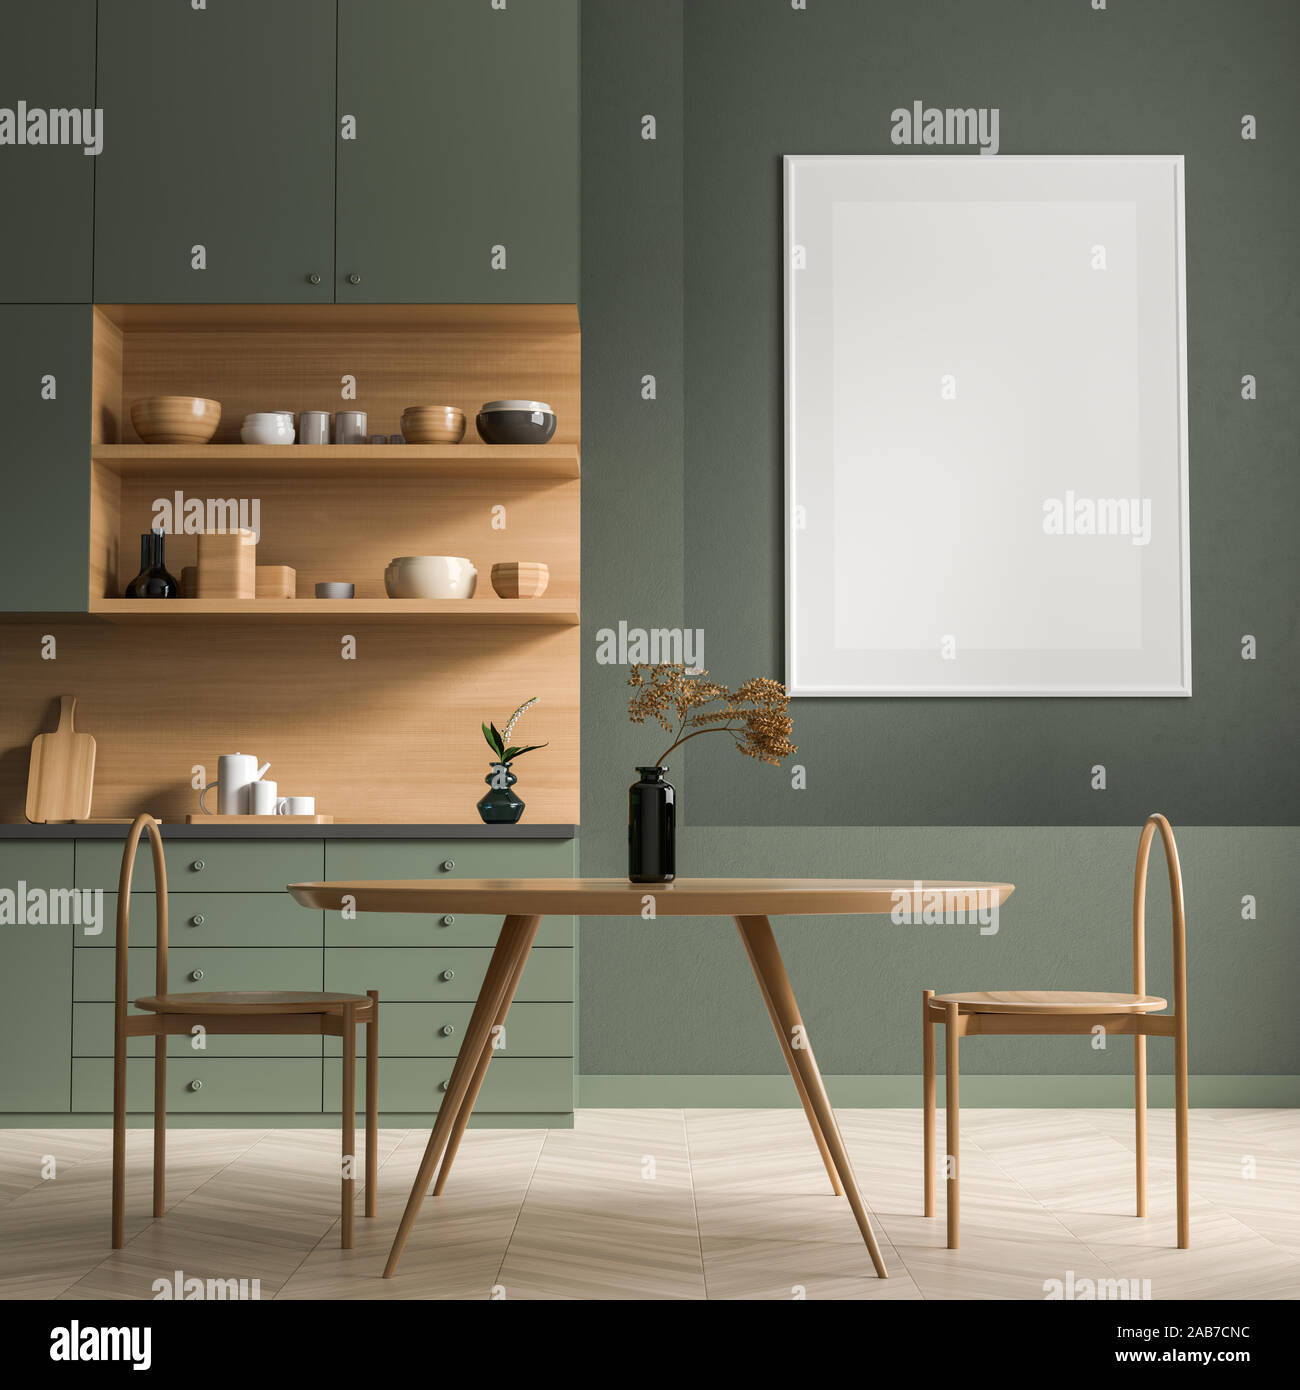 Scandinavian Style Dining Room With Wooden Chair And Table Minimalist Dining Room Design 3d Illustration Stock Photo Alamy